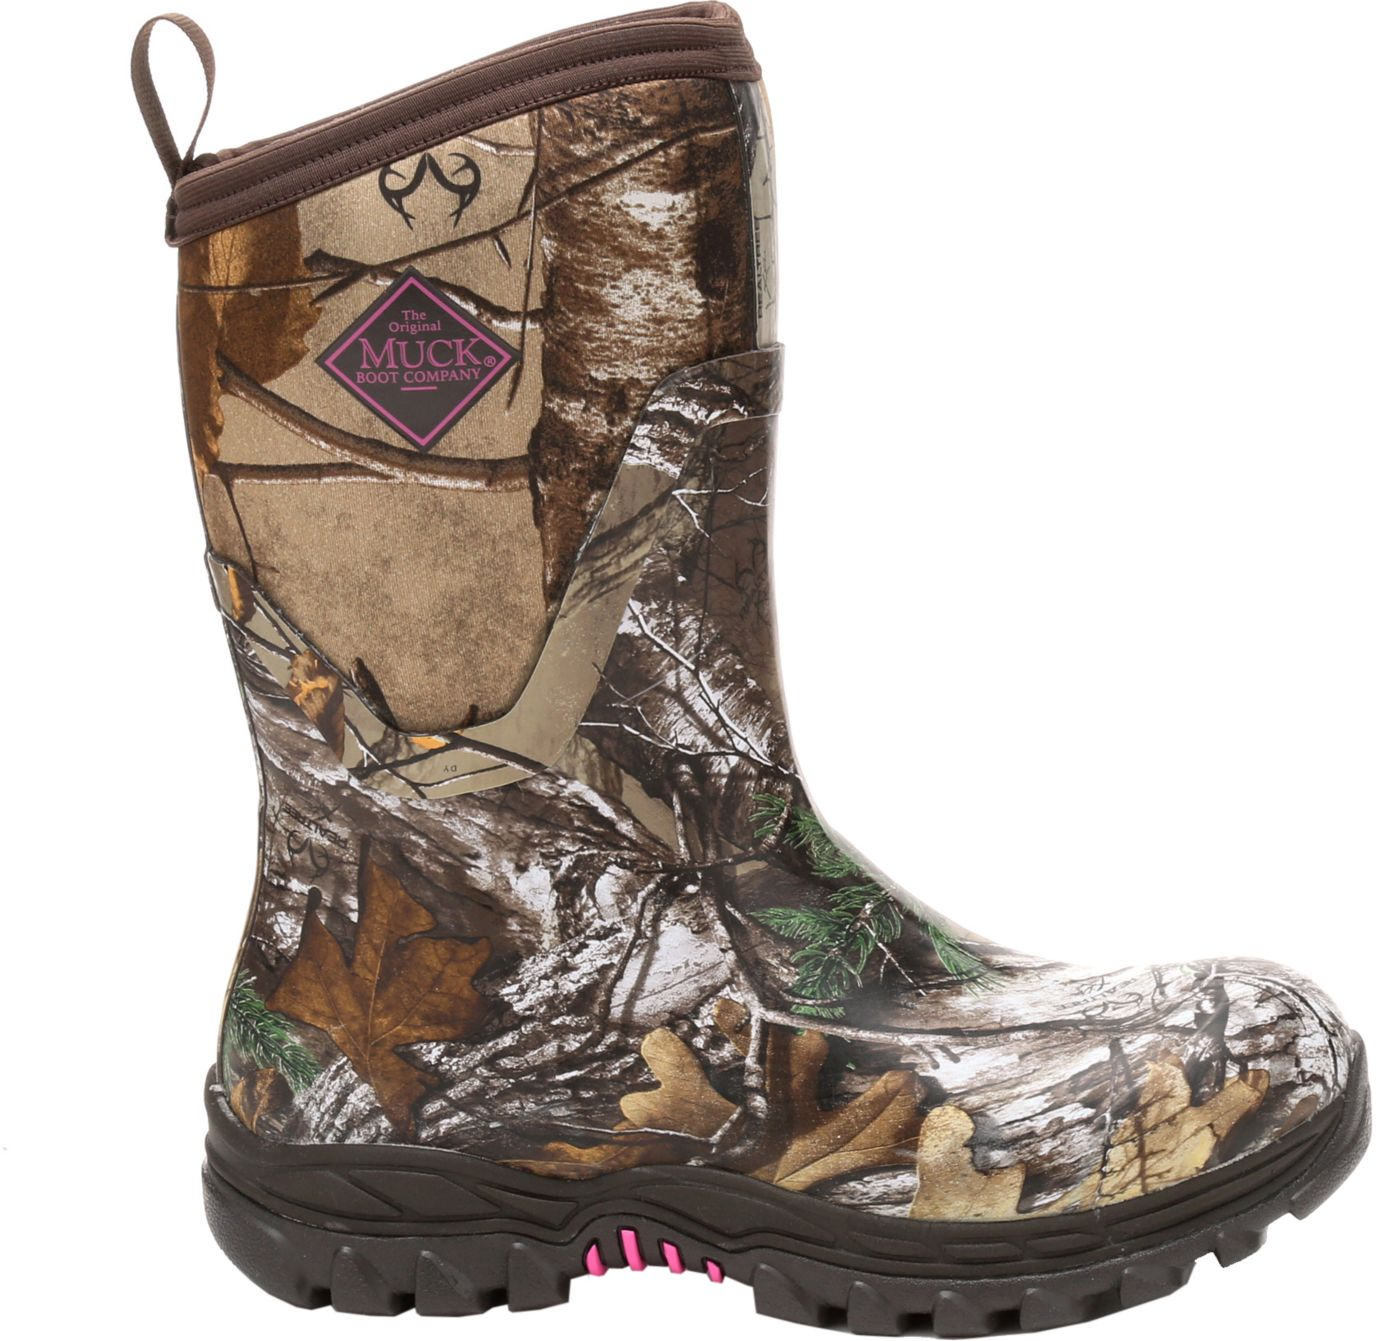 Muck Boots Women's Arctic Hunter Mid Realtree Xtra Rubber Hunting Boots